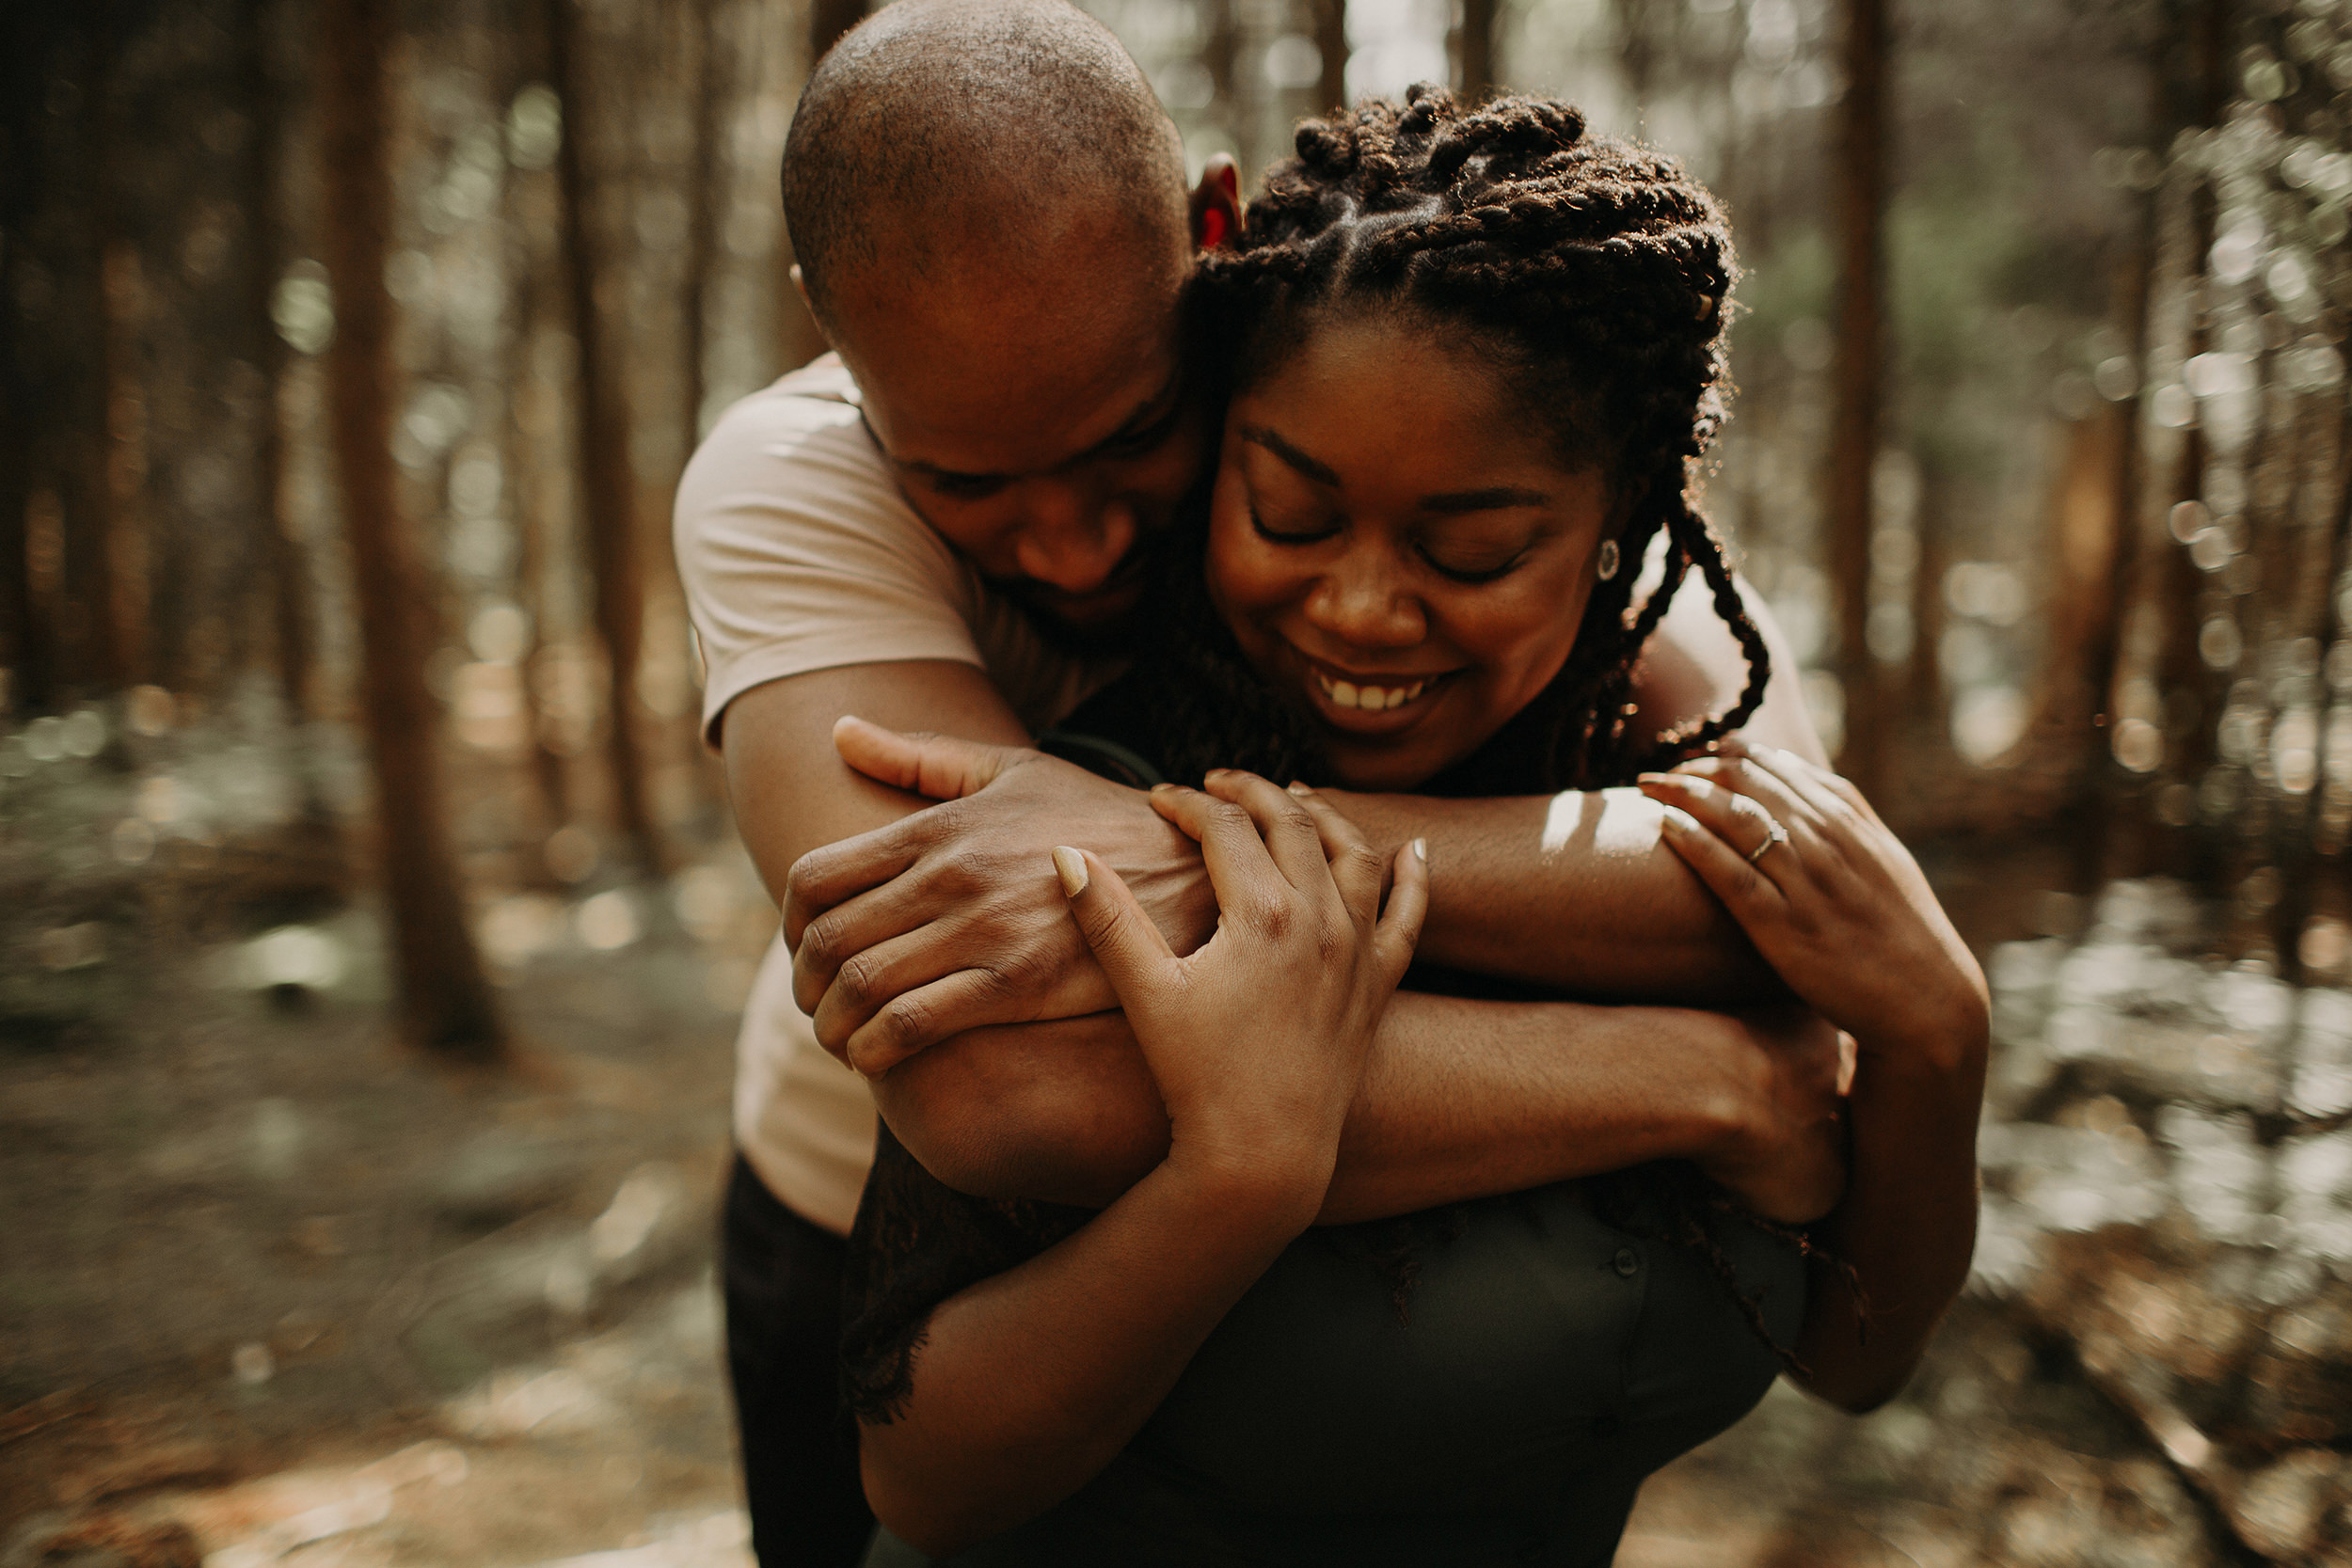 engaged couple hug each other intimately in the black park